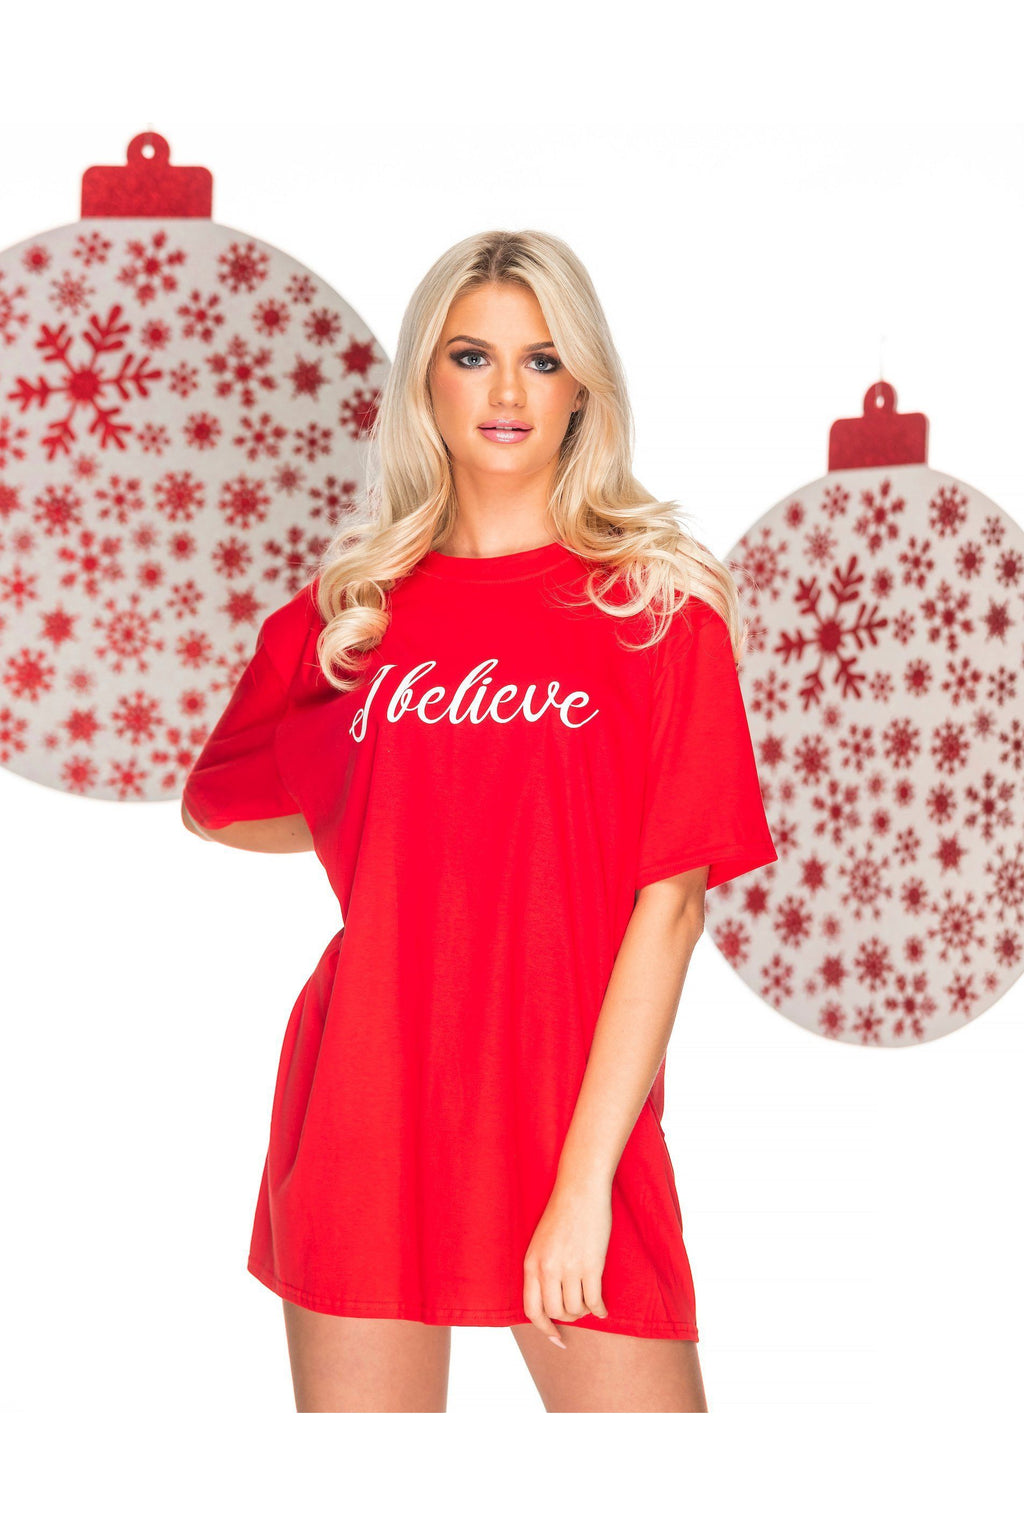 I BELIEVE Christmas Sleep Tee Pyjamas